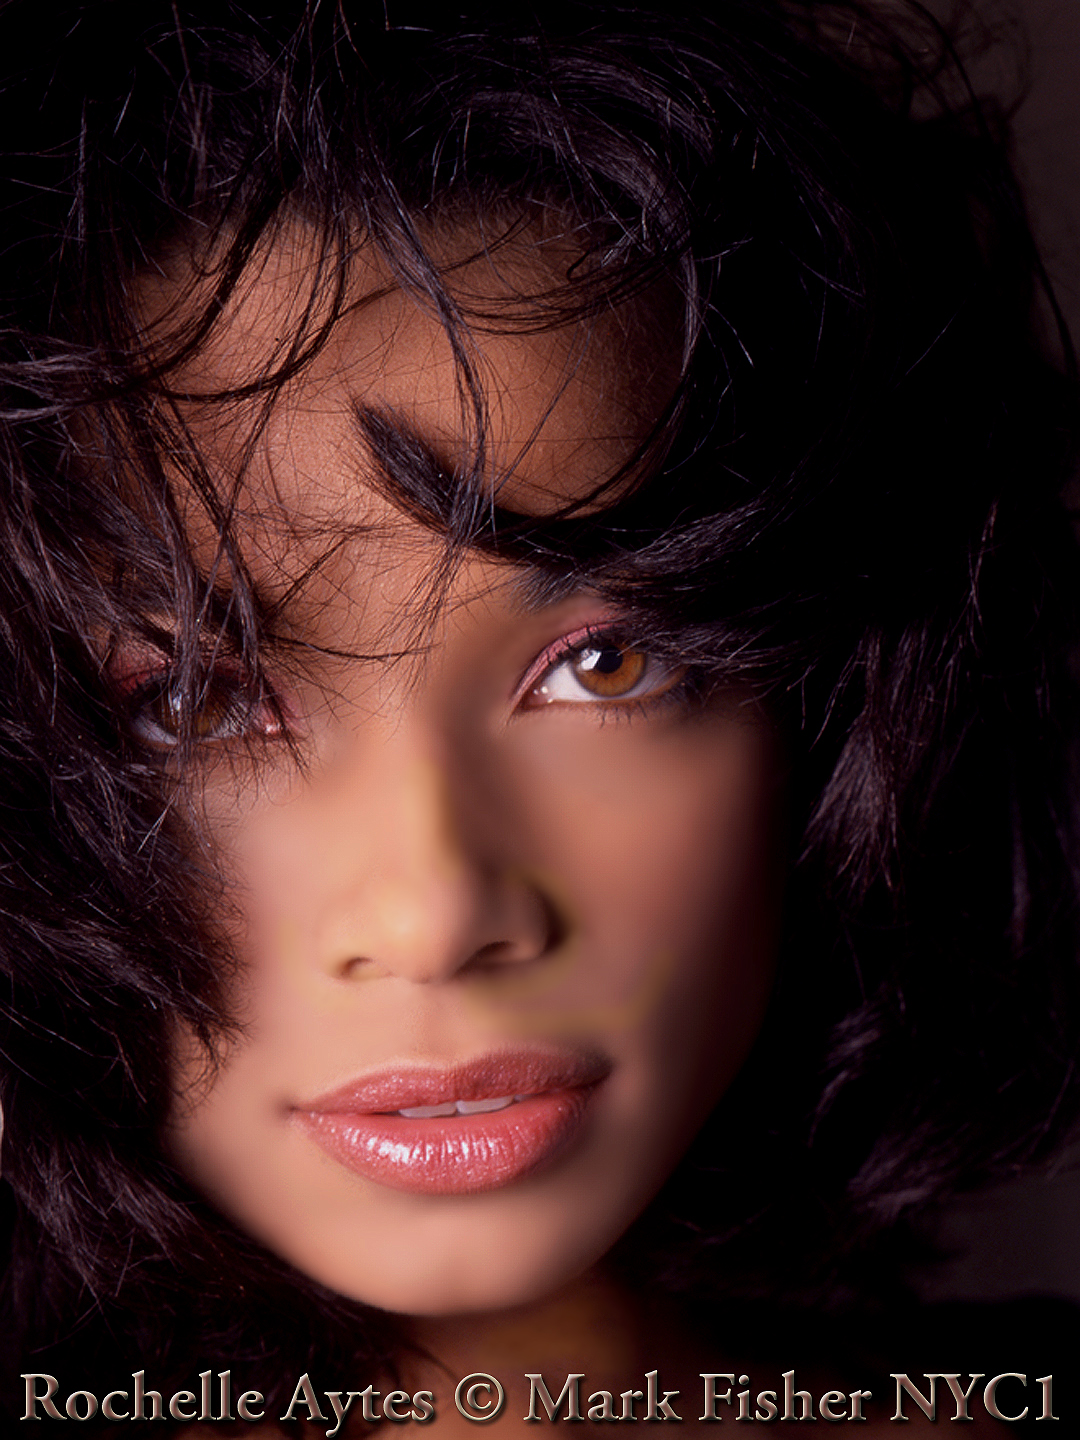 Rochelle Aytes - Photos Hot | Pictures Digital Beauty